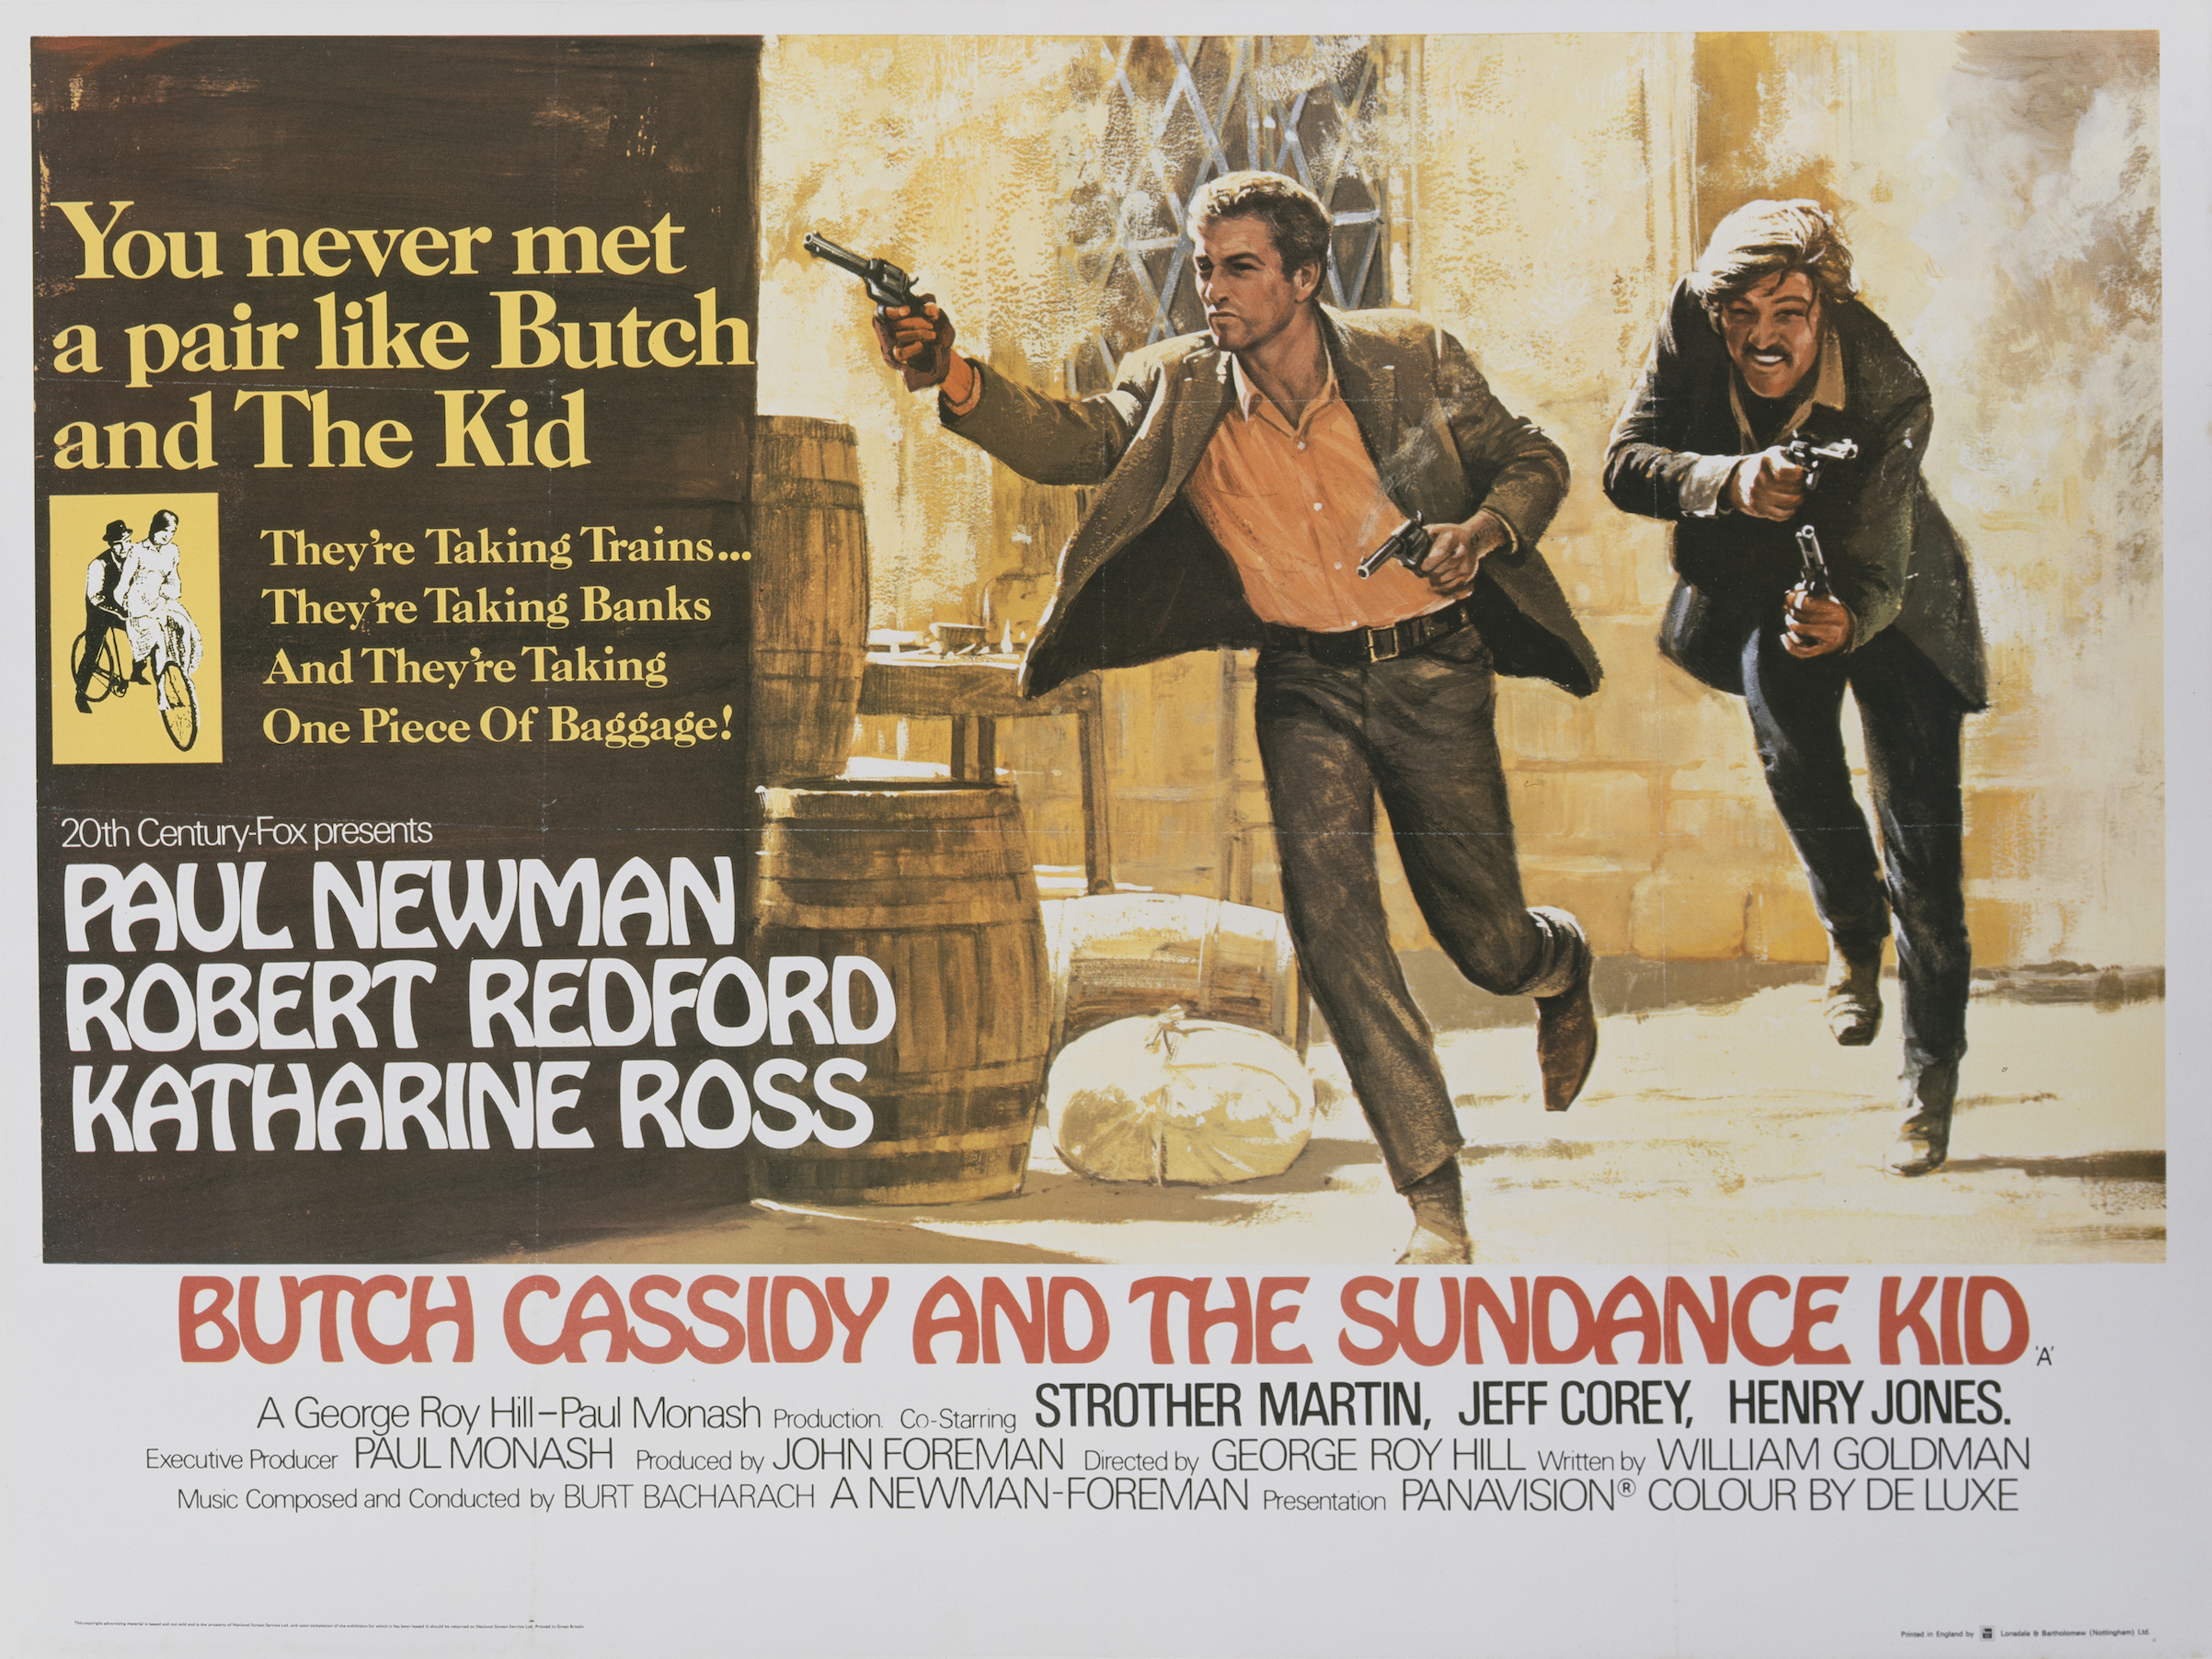 A poster for George Roy Hill's 1969 biopic 'Butch Cassidy and the Sundance Kid' starring Paul Newman and Robert Redford.